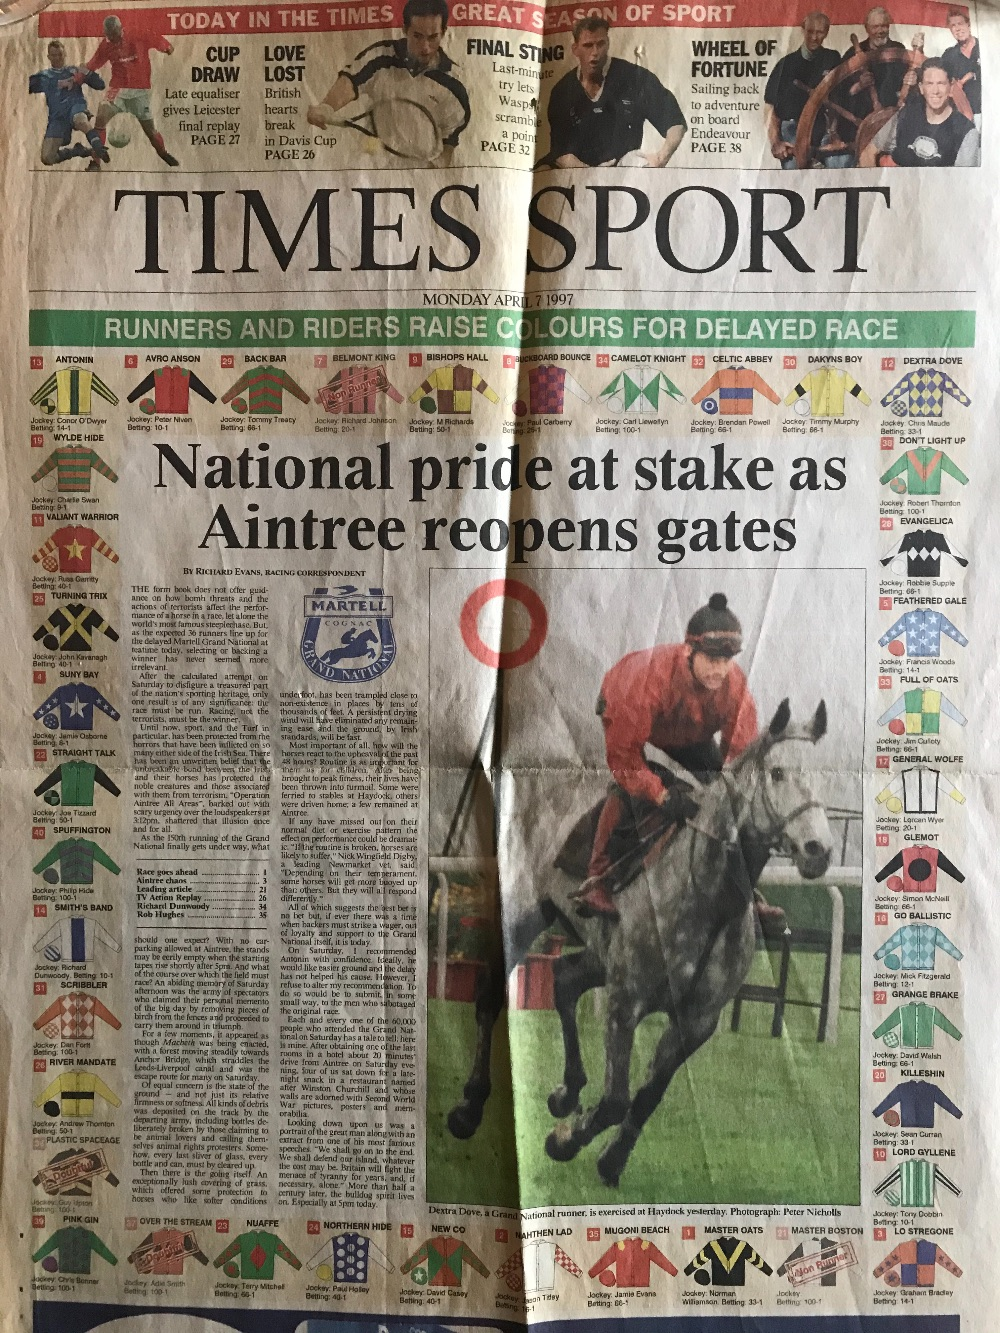 Grand National - 1997 - The Year of the IRA Bomb Scare - great memories